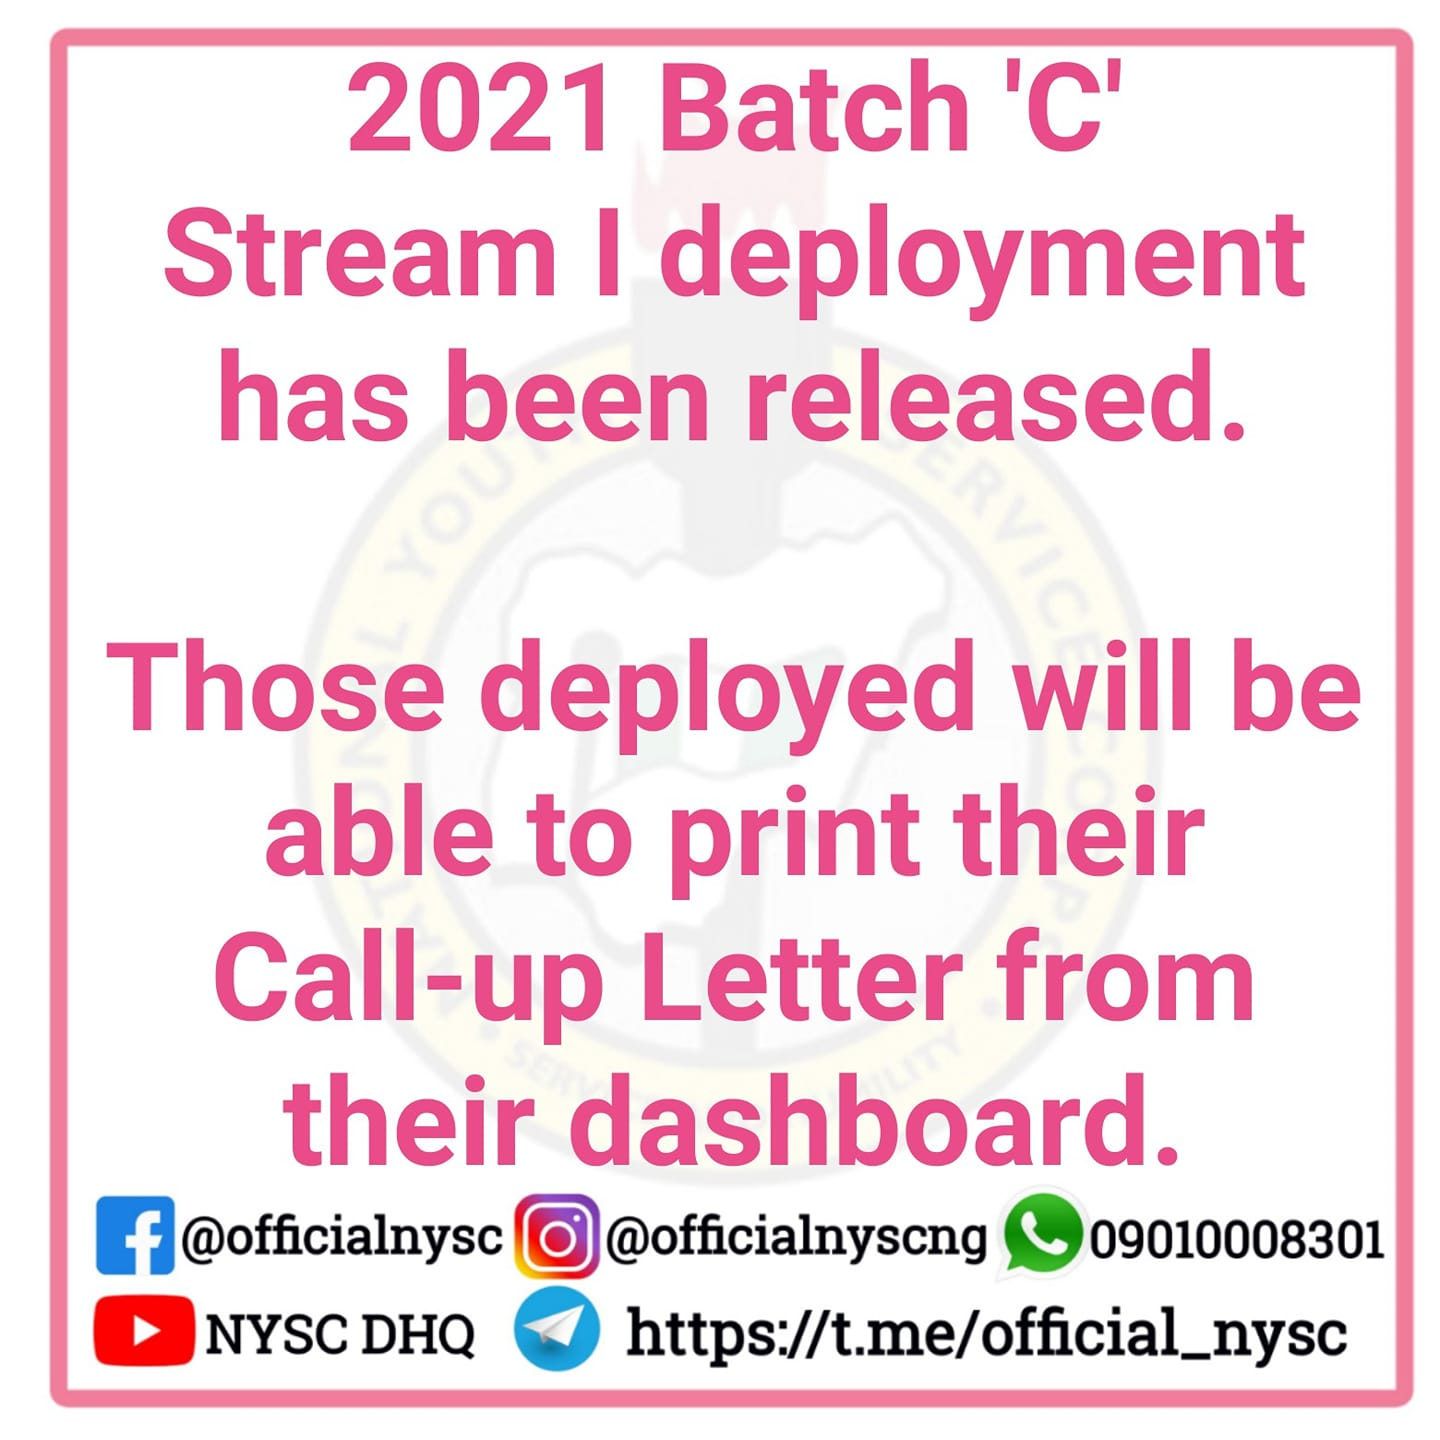 NYSC 2021 Batch 'C' Call Up Letter Printing Date & Guidelines